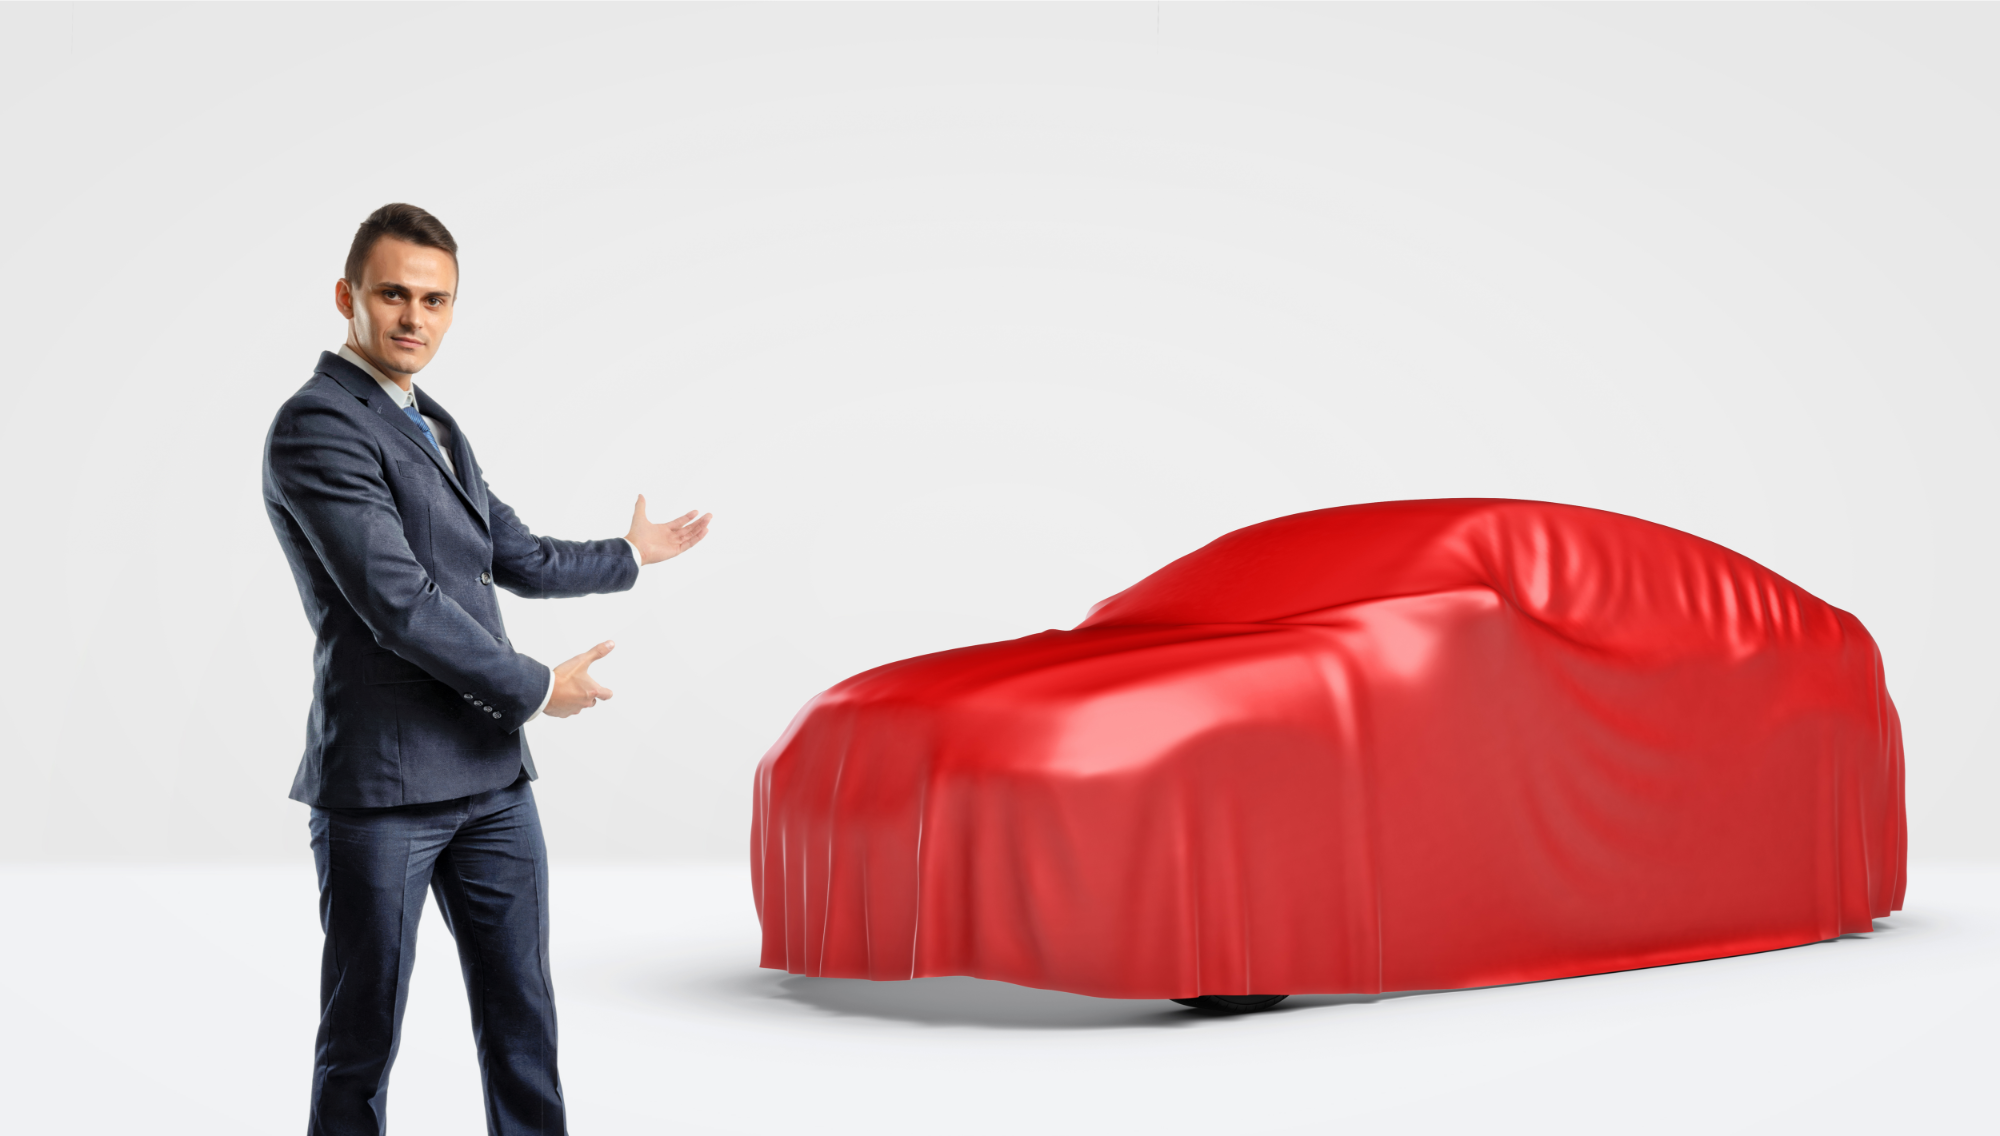 Car Salesman unveiling a car